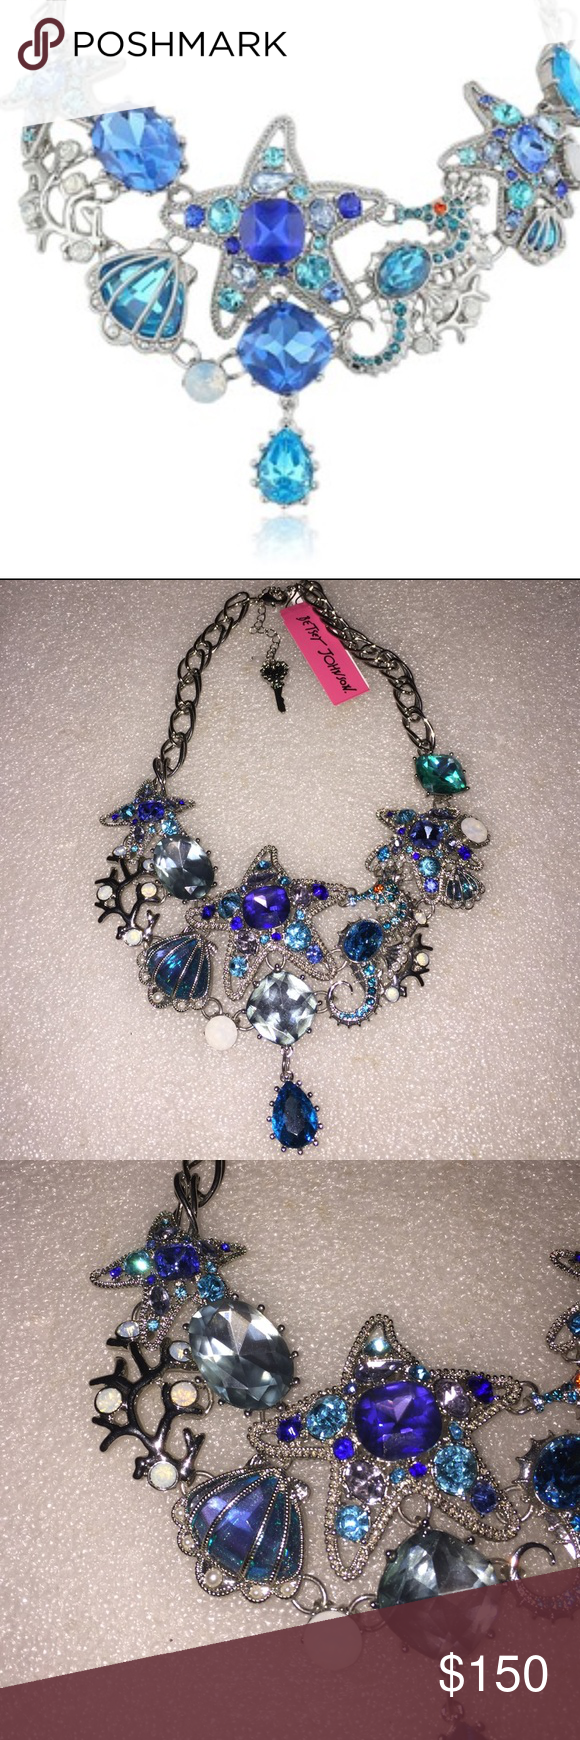 Betsey Johnson necklace Selling to buy Betsey pieces I need. This is from the nautical collection. The gorgeous necklace is silver tone. The charms include starfish,clams,seahorse, and large stones. Nwt Betsey Johnson Jewelry Necklaces